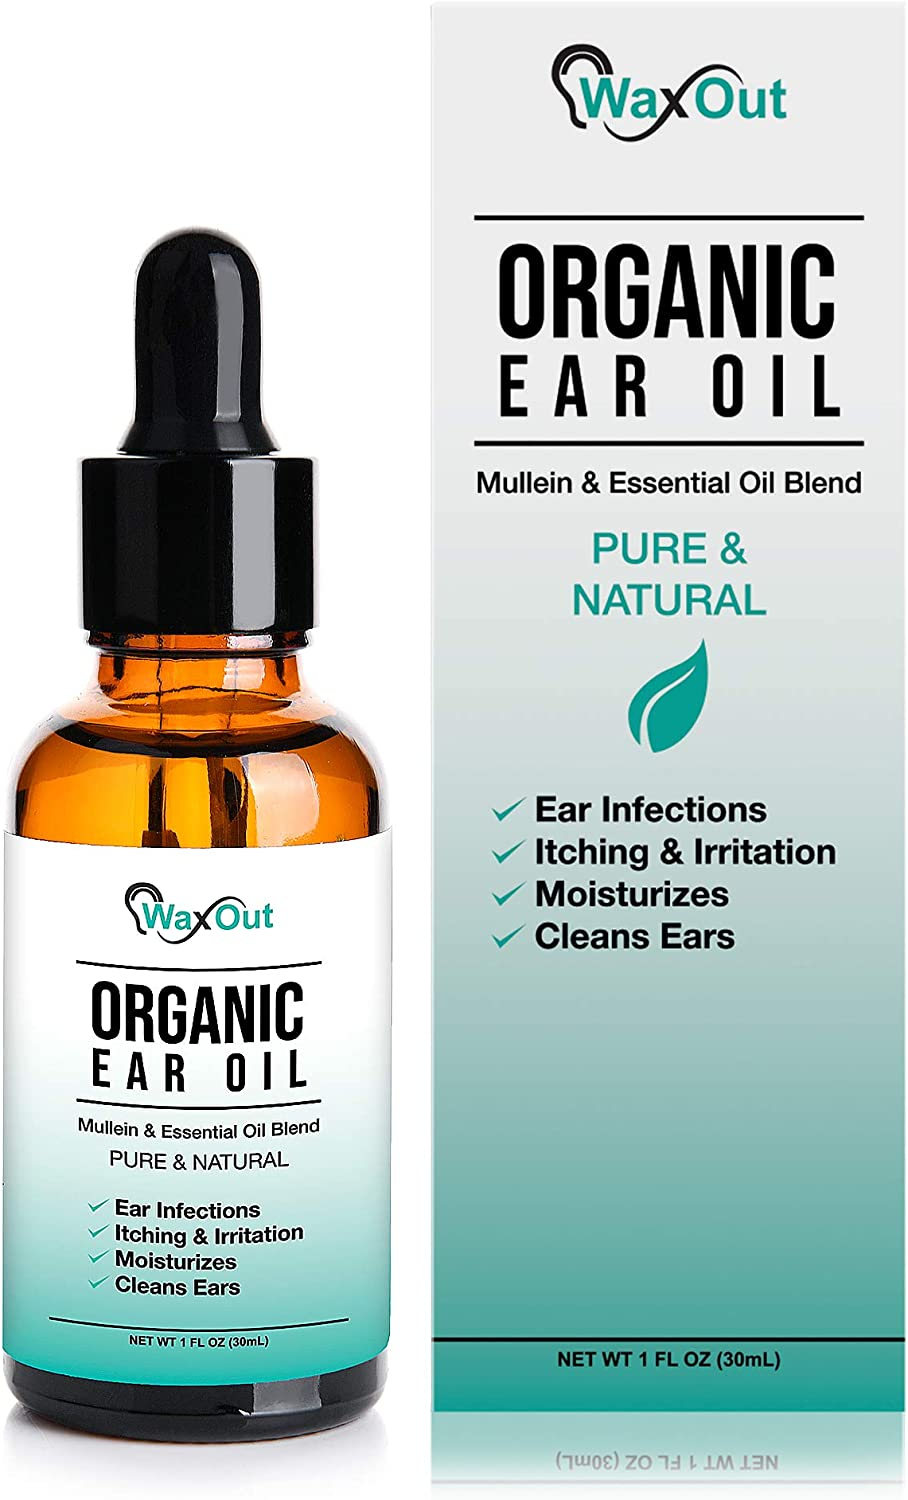 Amazon Com Natural Mullein Ear Wax Removal Oil Cleaner With Garlic Pain Earache Drops Earwax Softener Moisturizer Allergy Soothing Tinnitus Itching Ringing Infections Clogged Ears Relief